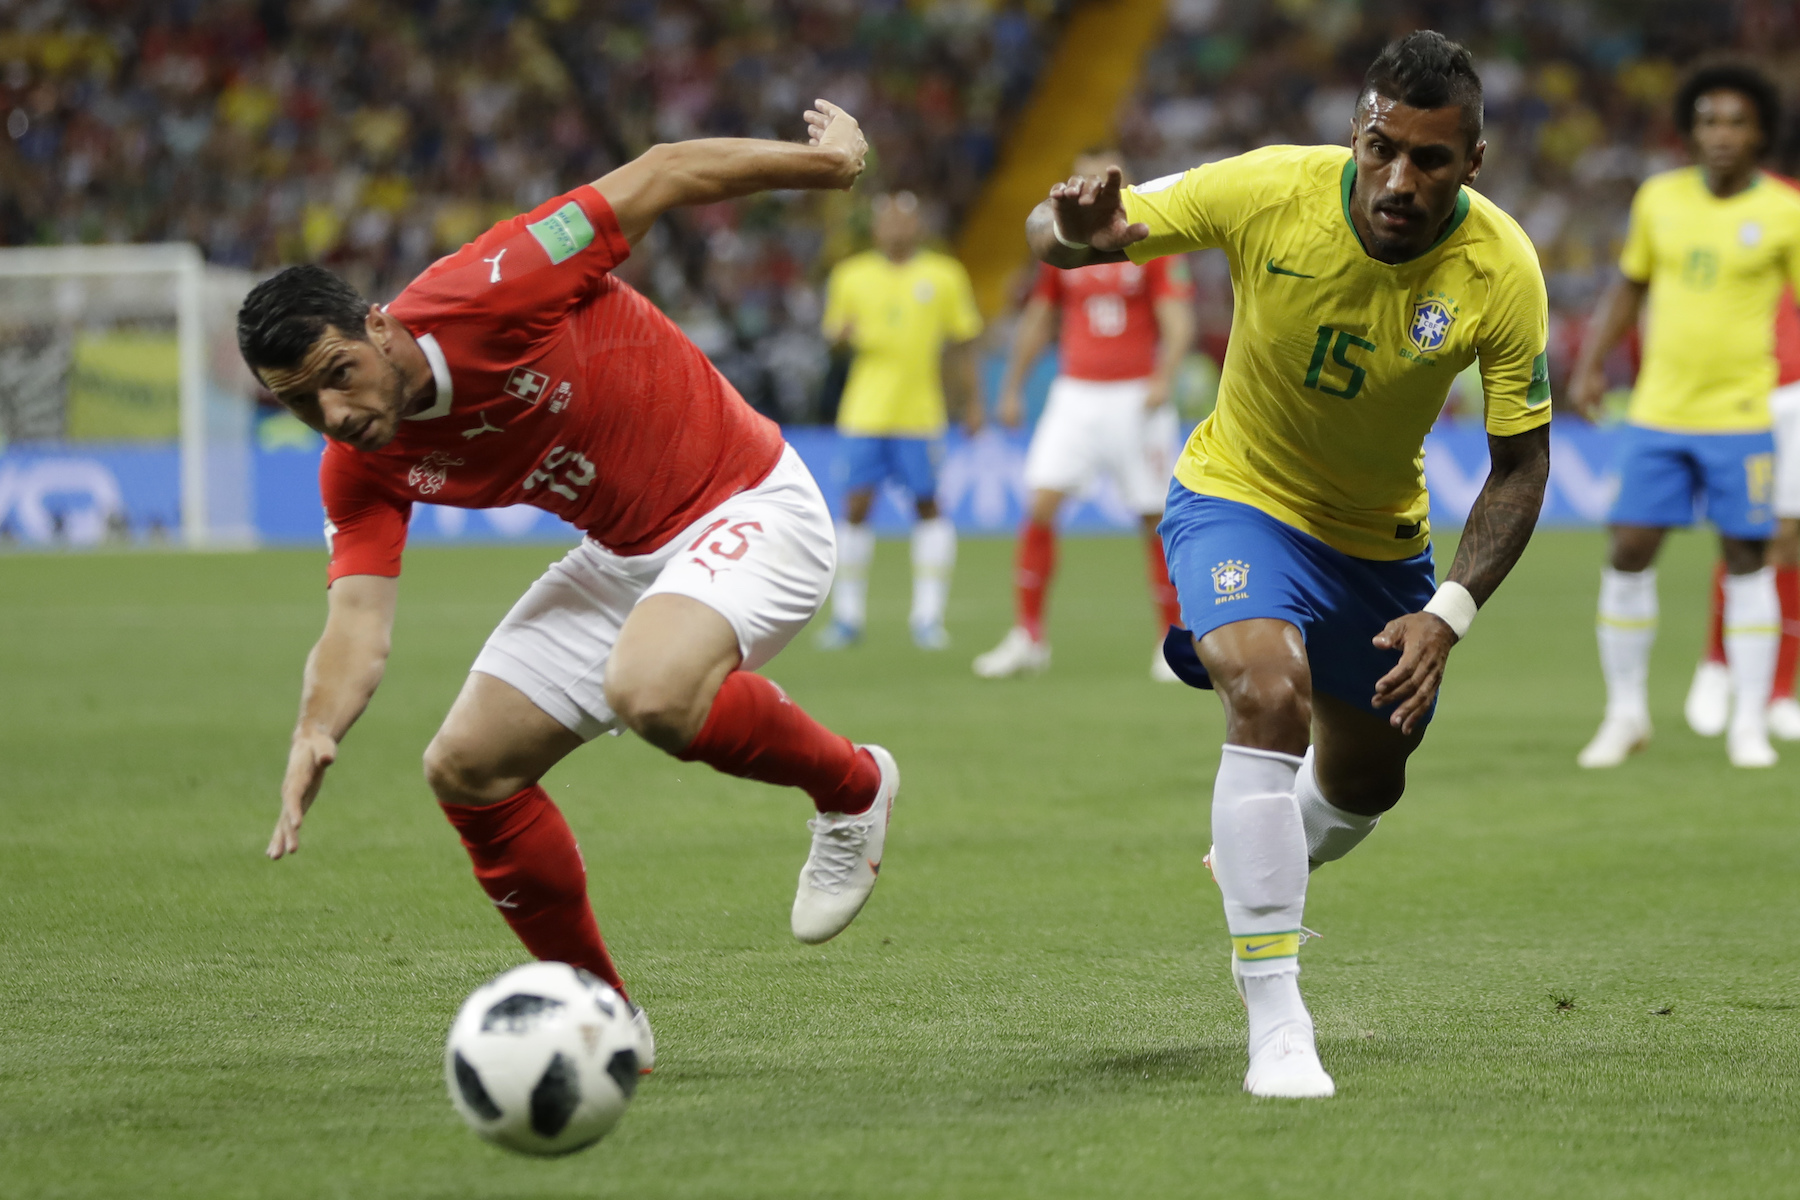 <div class='meta'><div class='origin-logo' data-origin='AP'></div><span class='caption-text' data-credit='AP Photo/Andre Penner'>Switzerland's Blerim Dzemaili, left, and Brazil's Paulinho eye the during their group E match at the 2018 soccer World Cup in the Rostov Arena in Rostov-on-Don, Russia.</span></div>